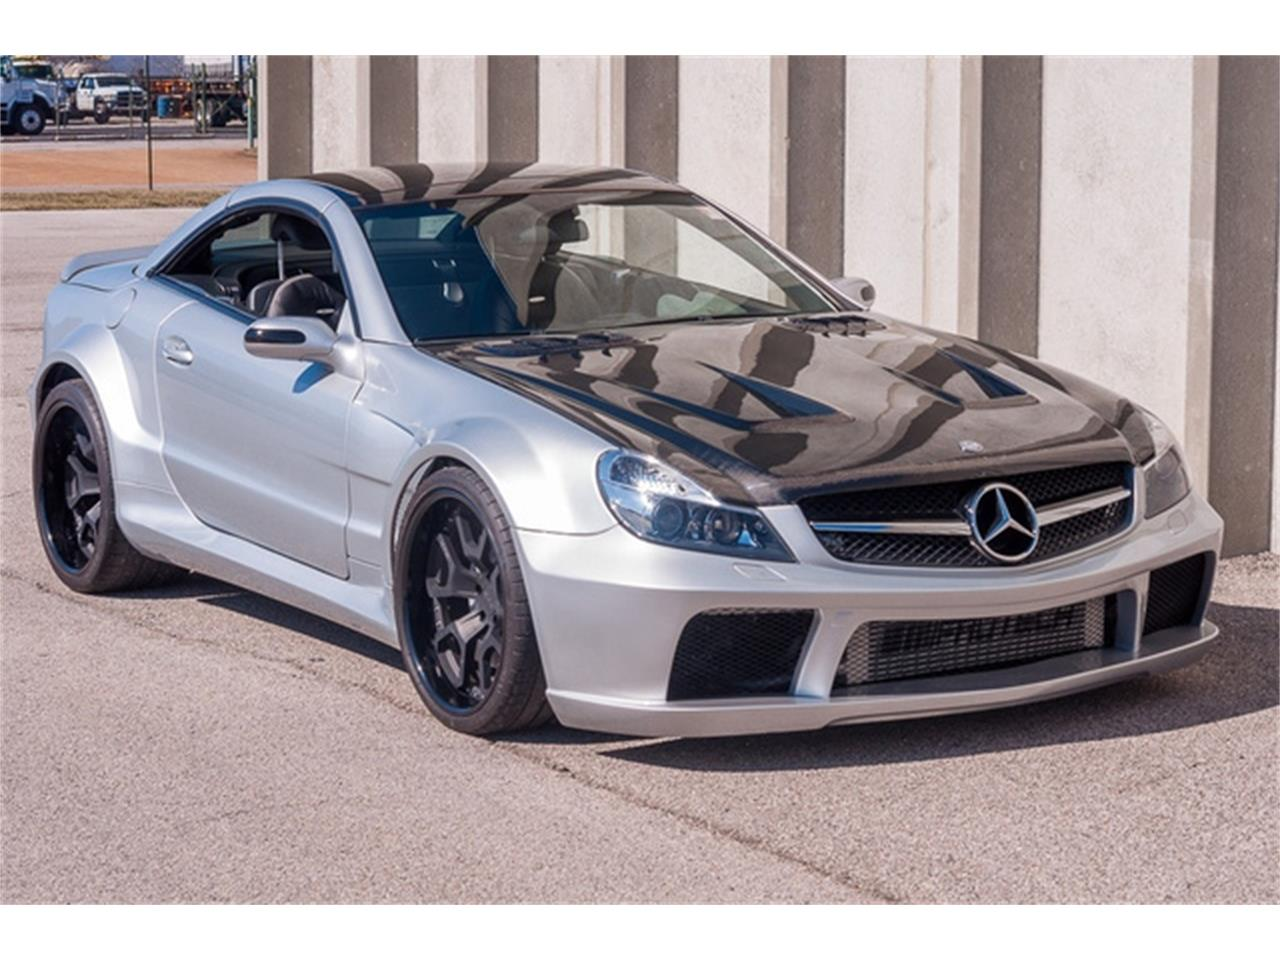 for sale 2005 mercedes-benz sl-class in st. louis, missouri cars - saint louis, mo at geebo